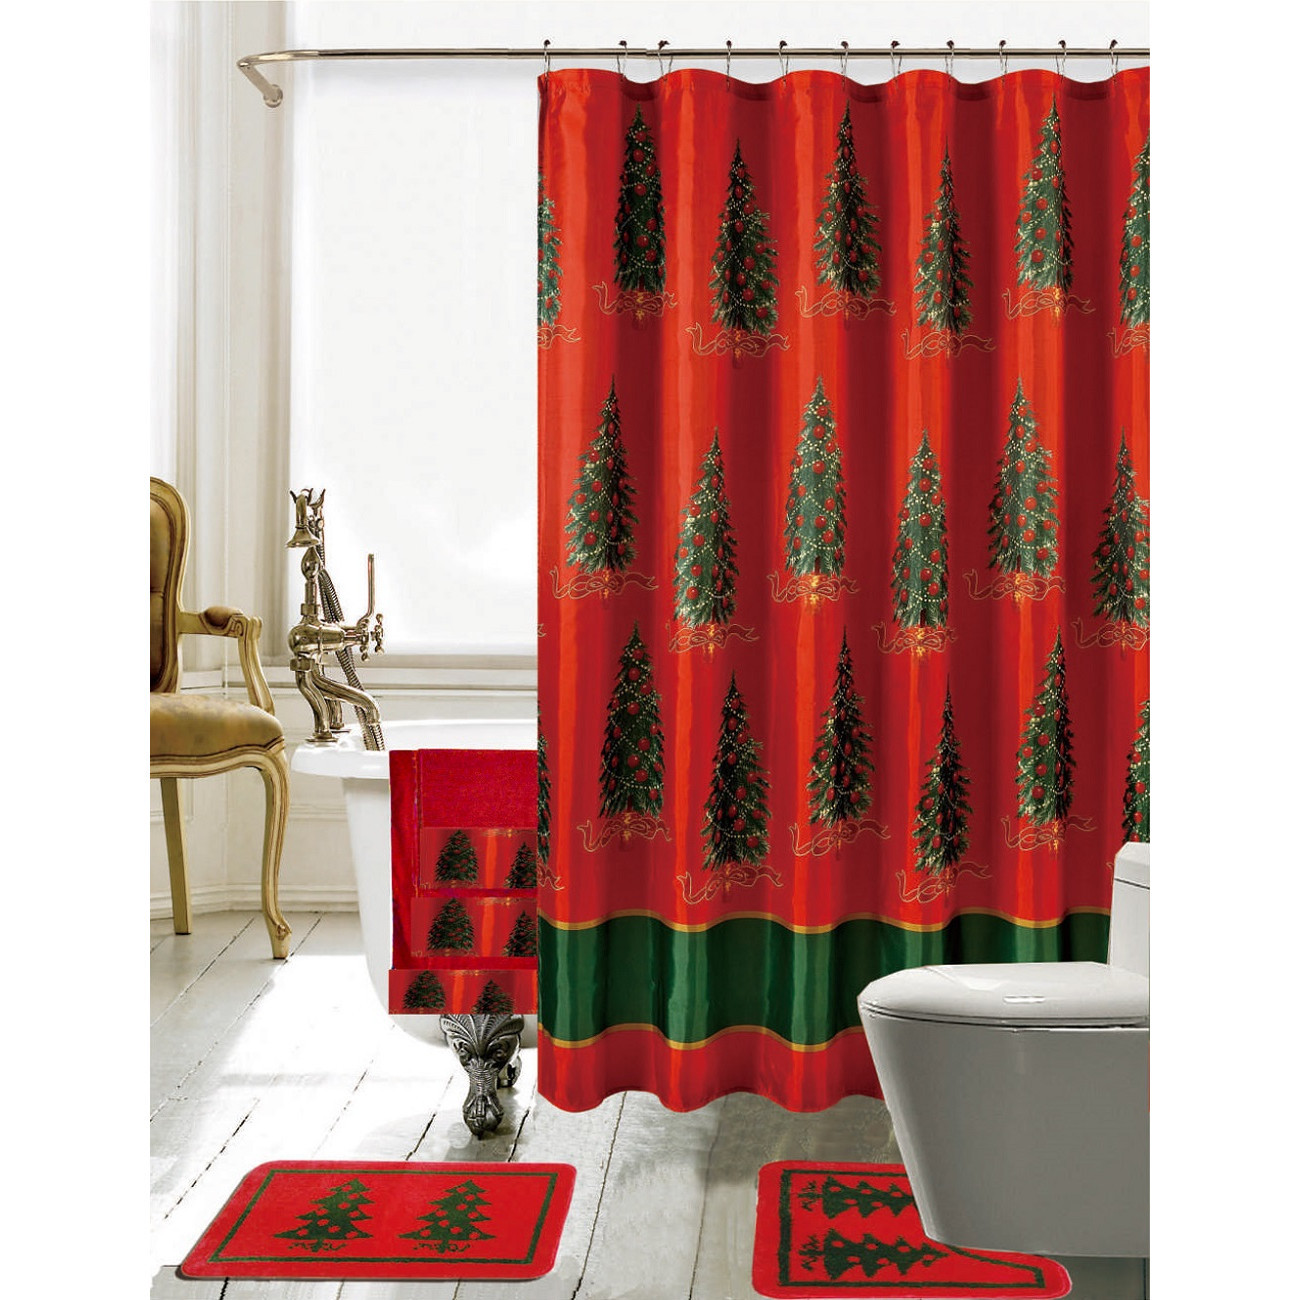 Best ideas about Bathroom Sets With Shower Curtain . Save or Pin Daniels Bath Christmas Bathroom Decor 18 Piece Shower Now.